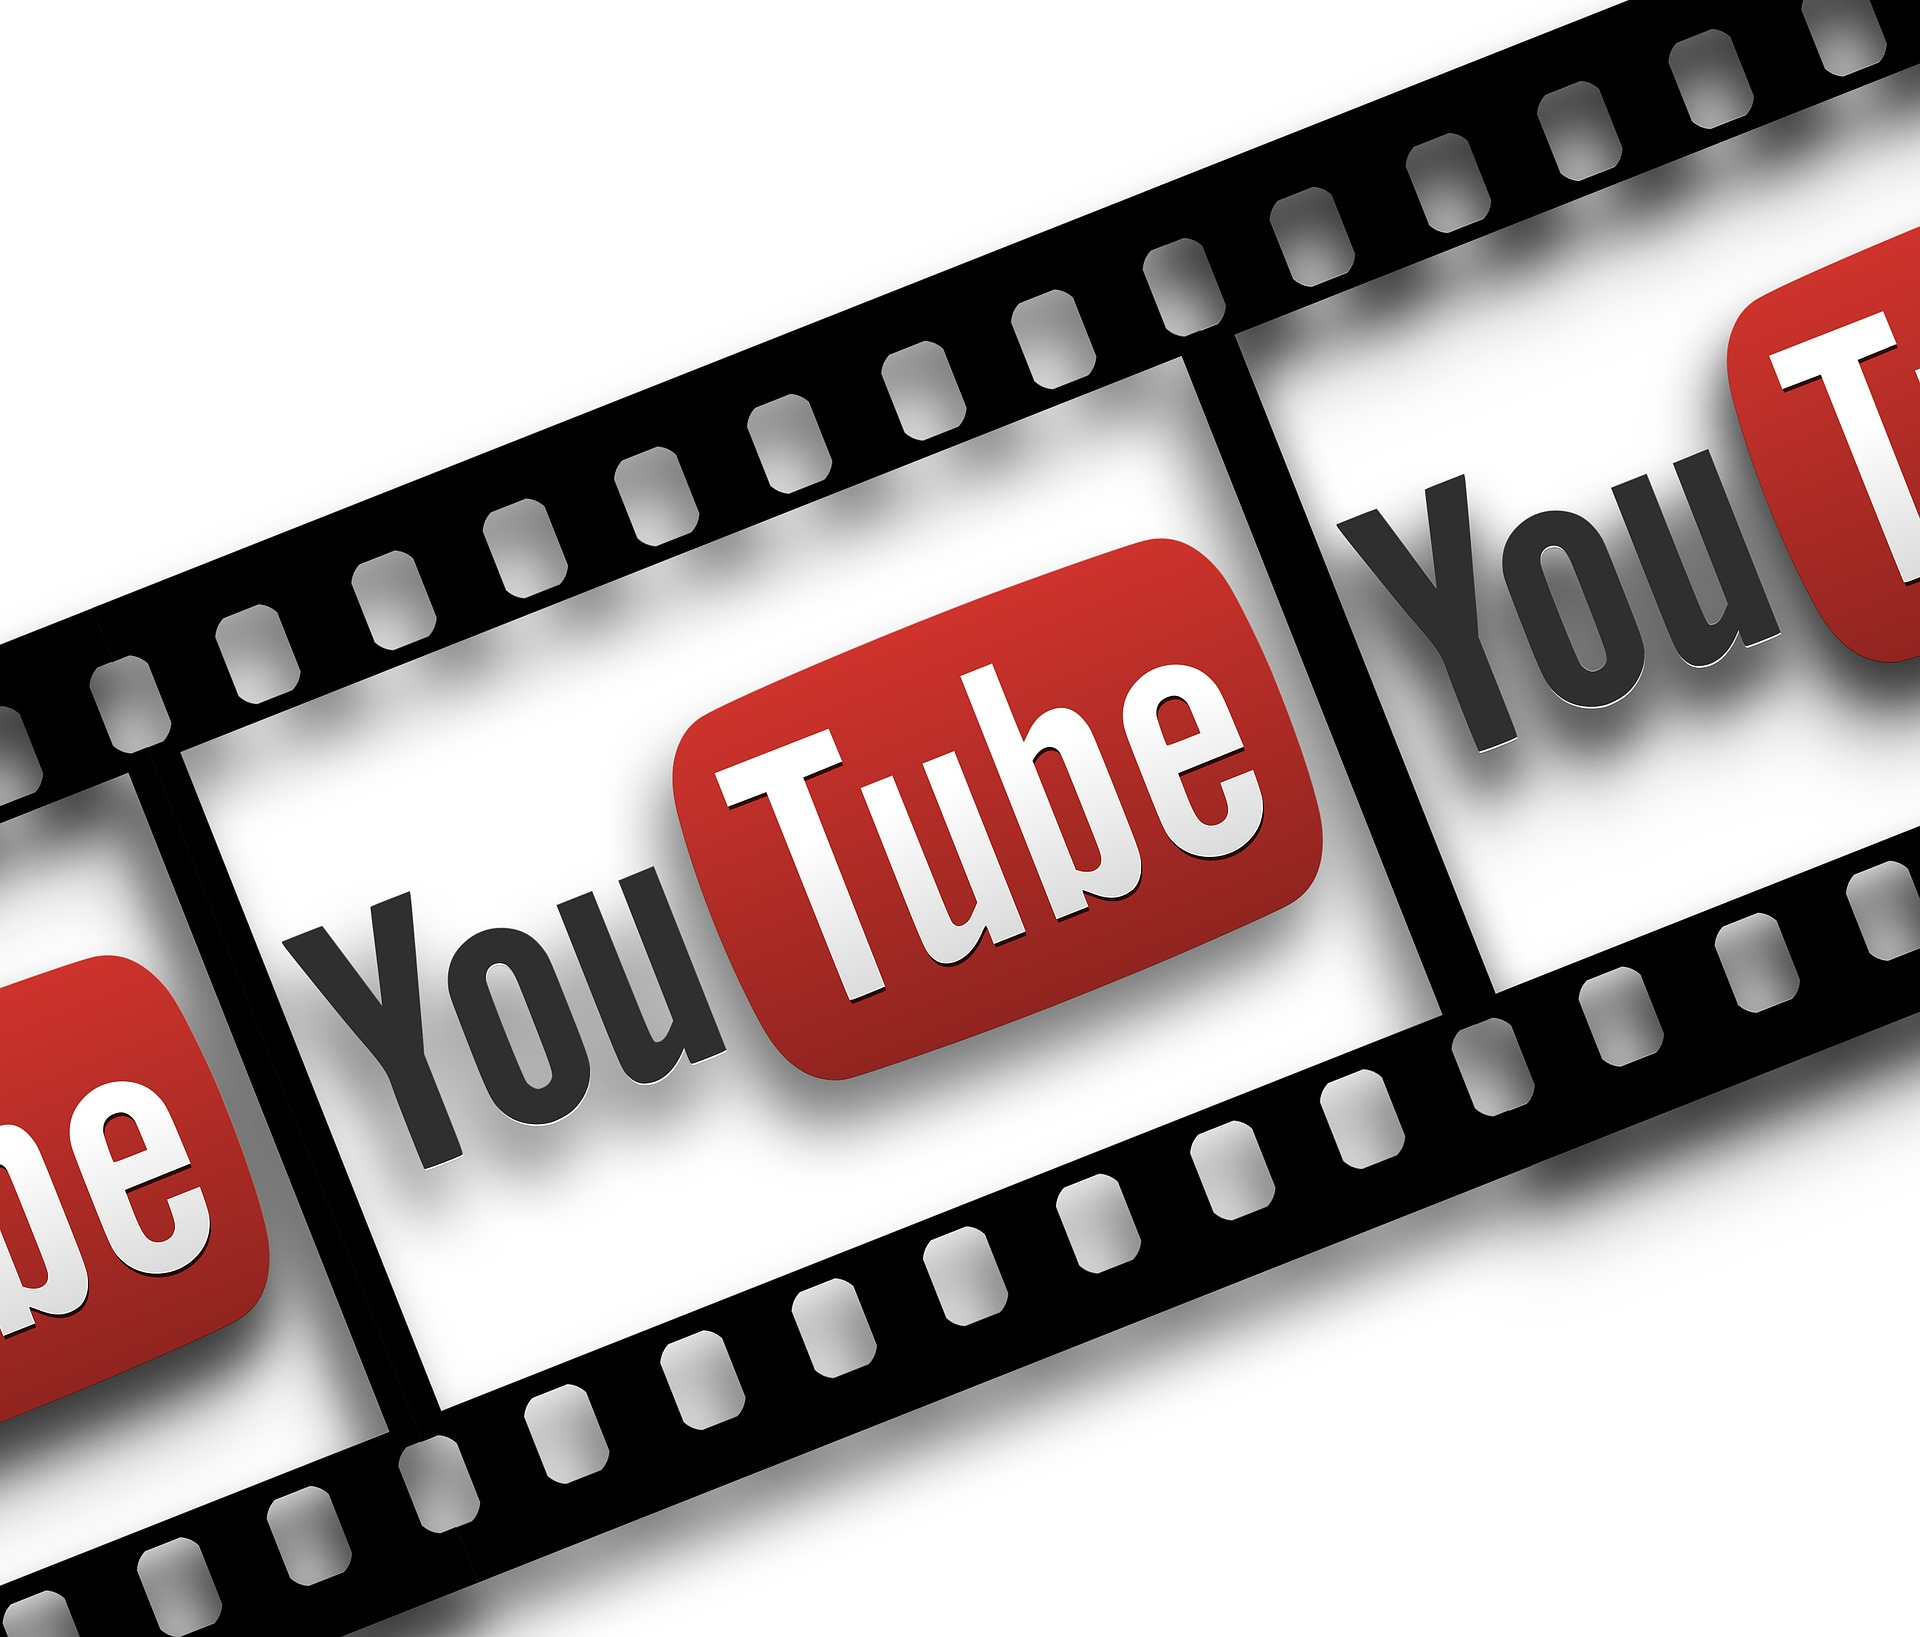 MBA News: mbaMission Introduces New YouTube Channel - mbaMission